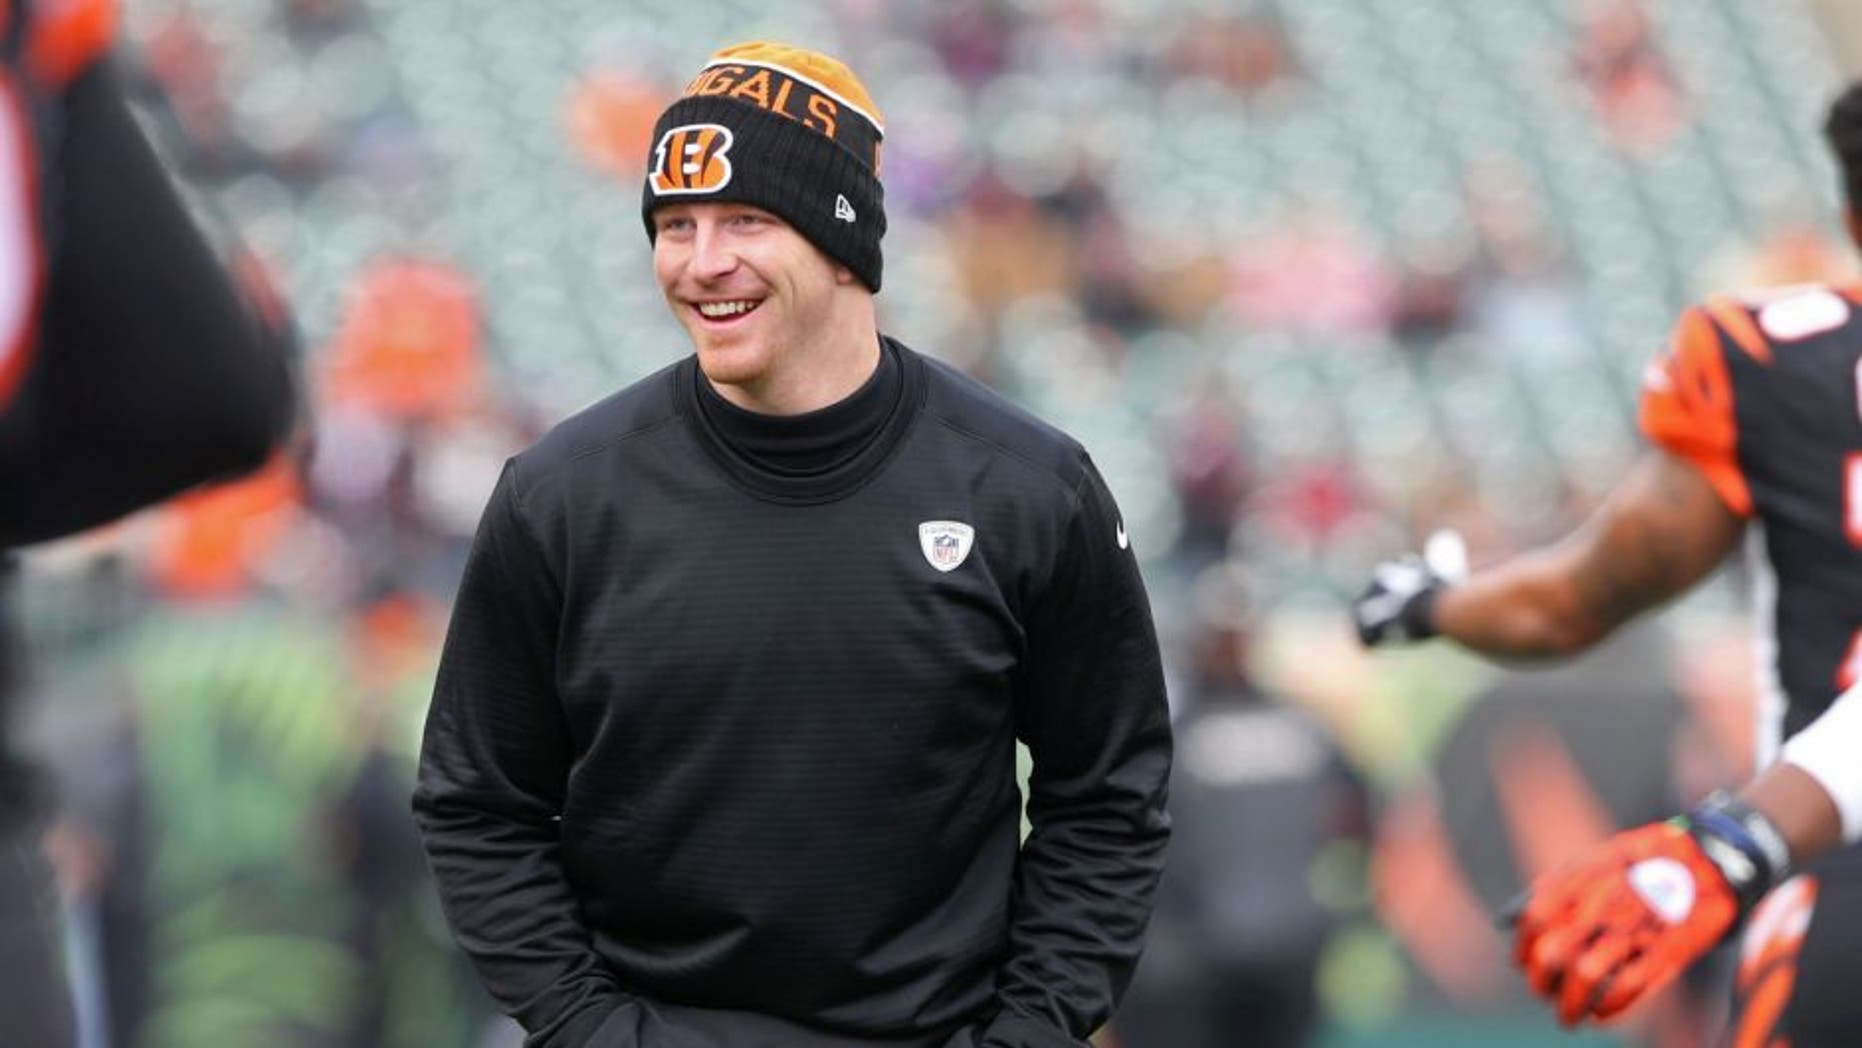 Jan 3, 2016; Cincinnati, OH, USA; Cincinnati Bengals quarterback Andy Dalton (14) looks on during warmups prior to the game against the Baltimore Ravens at Paul Brown Stadium. Mandatory Credit: Aaron Doster-USA TODAY Sports